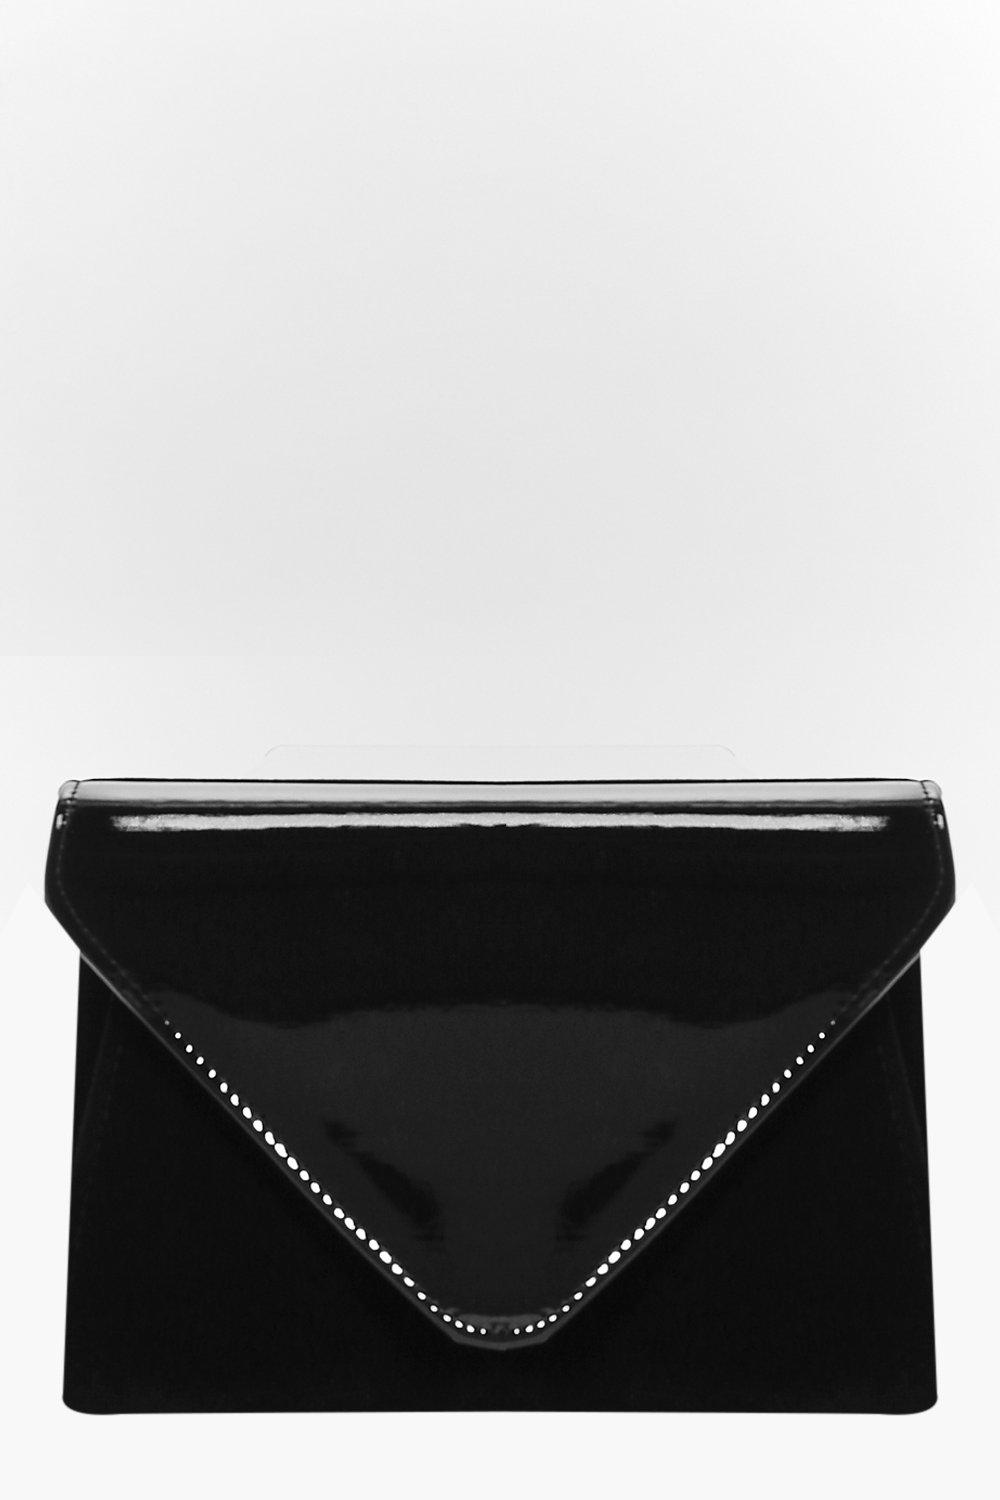 Lucy Contrast Patent Flat Clutch Bag